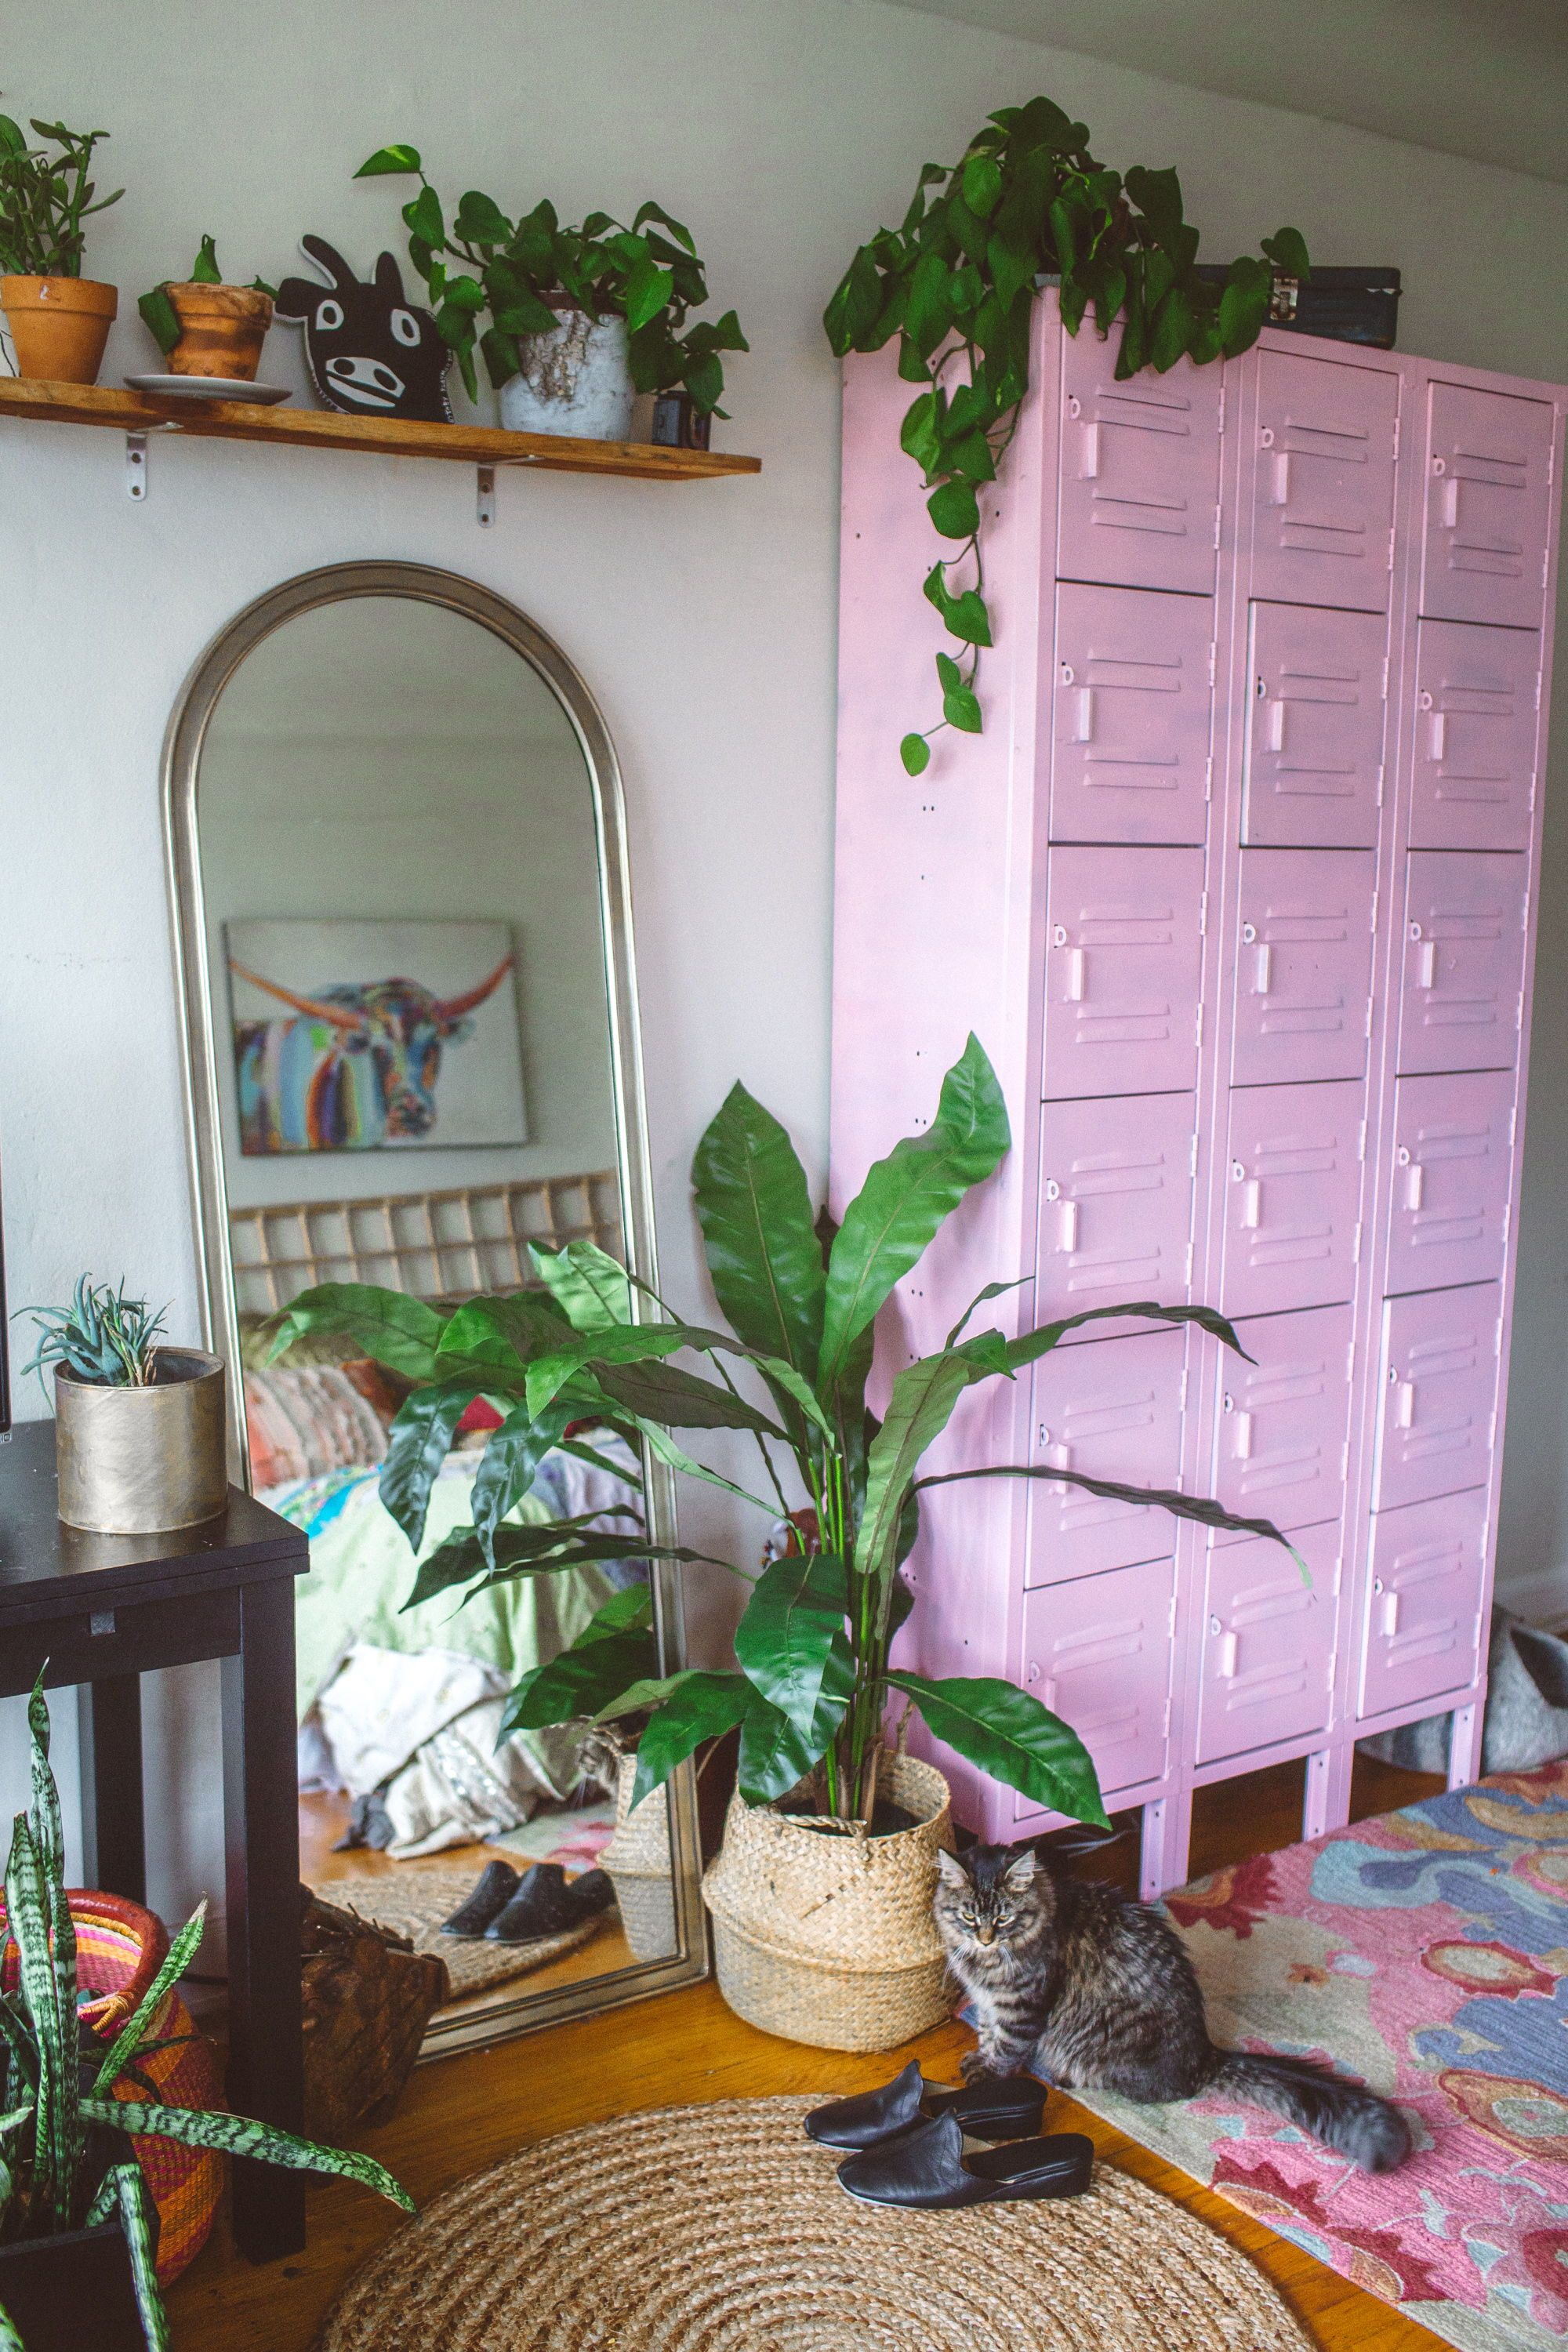 Tropical Home Decor Ideas That Ll Make Your Apartment Look Like Summer Home Decor Tropical Home Decor Decor